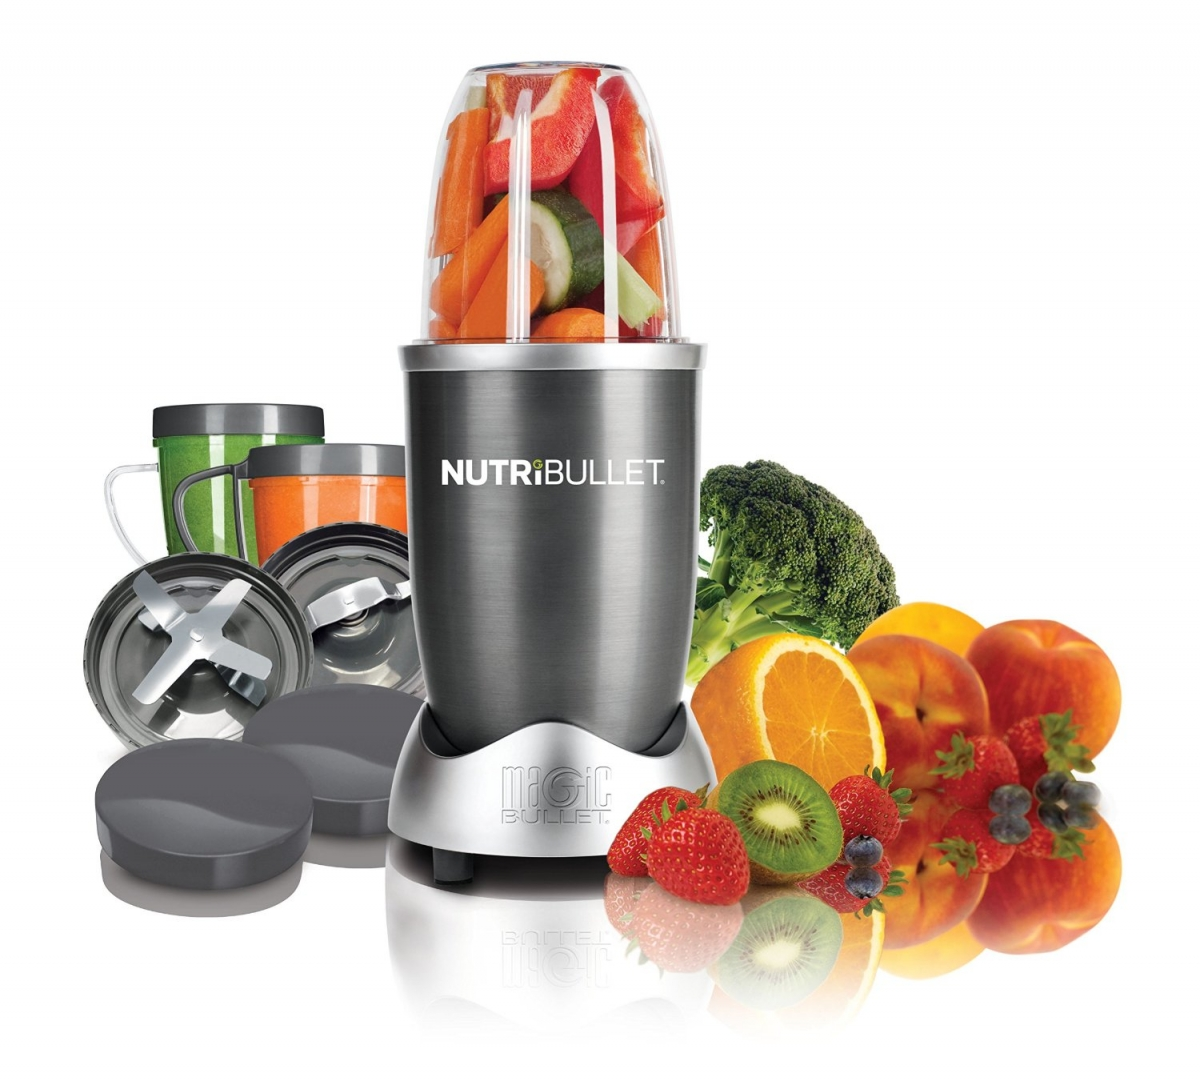 Black Friday Nutribullet deals